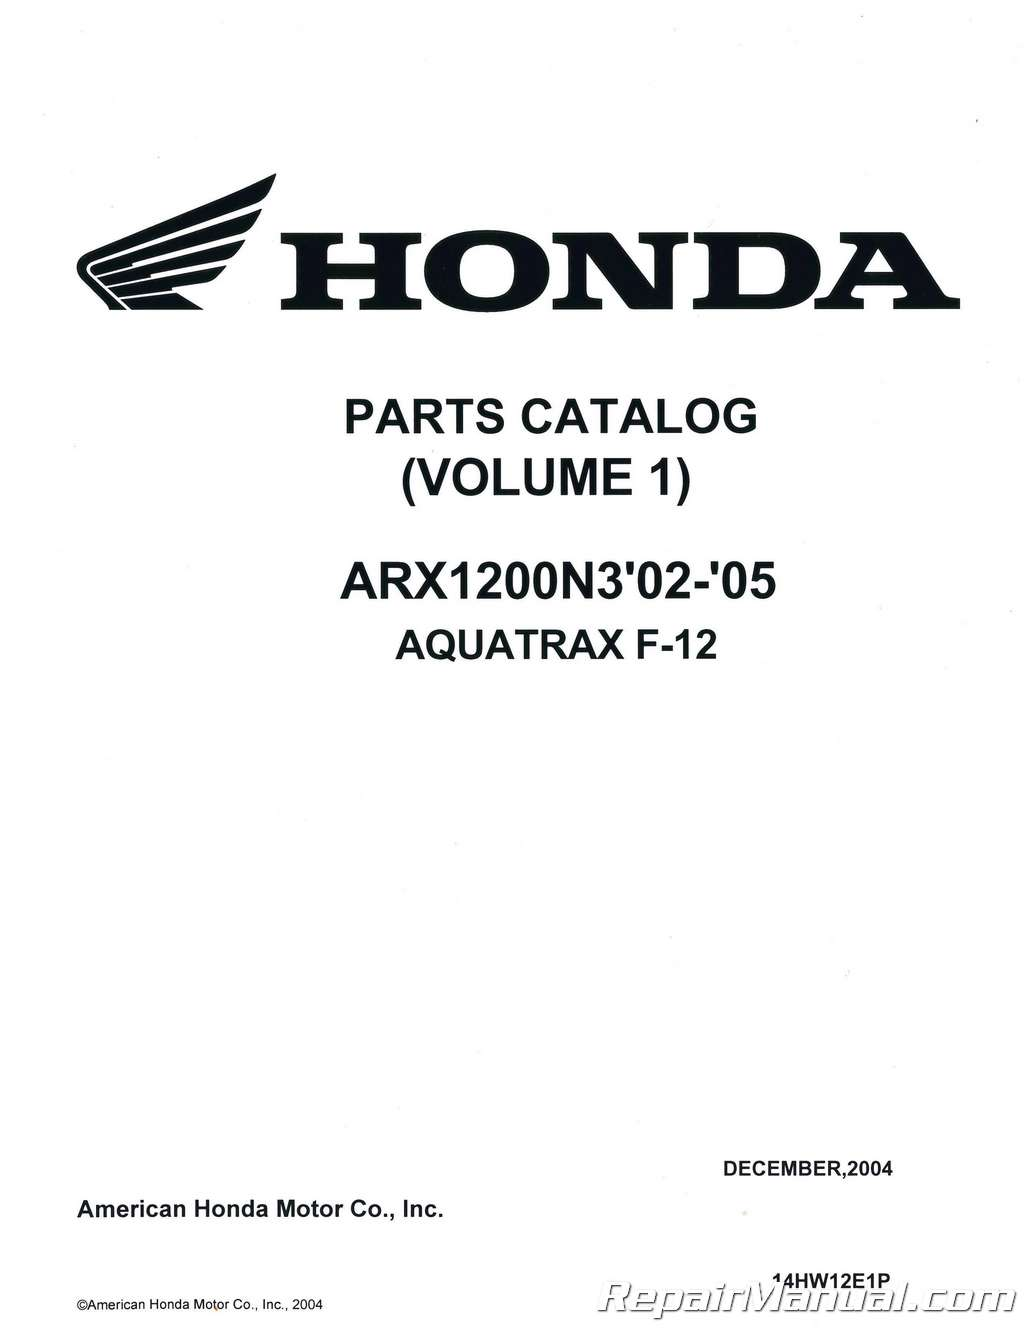 Parts Manual Honda ARX1200N3 2002-2005 AQUATRAX F-12 Volume 1